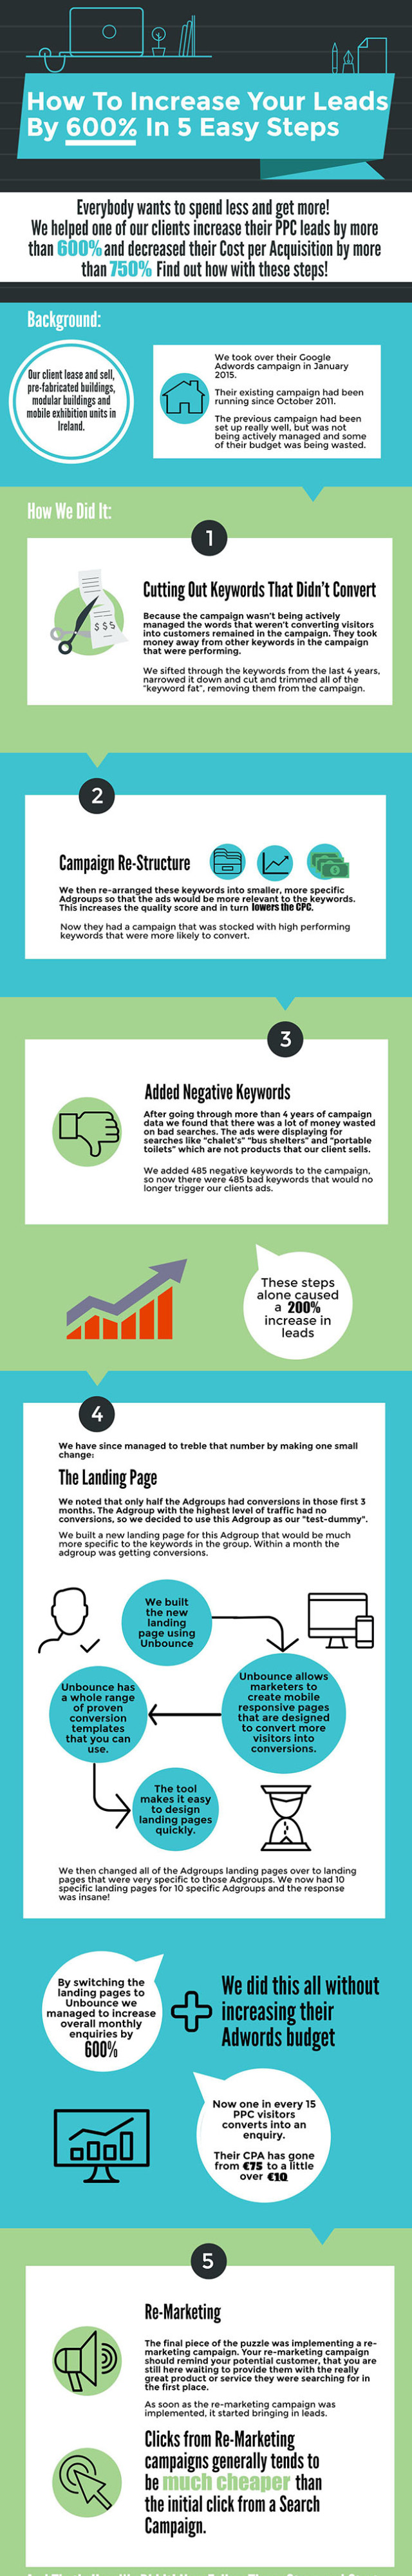 google-adwords-tips-5-steps-to-increase-ppc-leads-by-a-whopping-6001